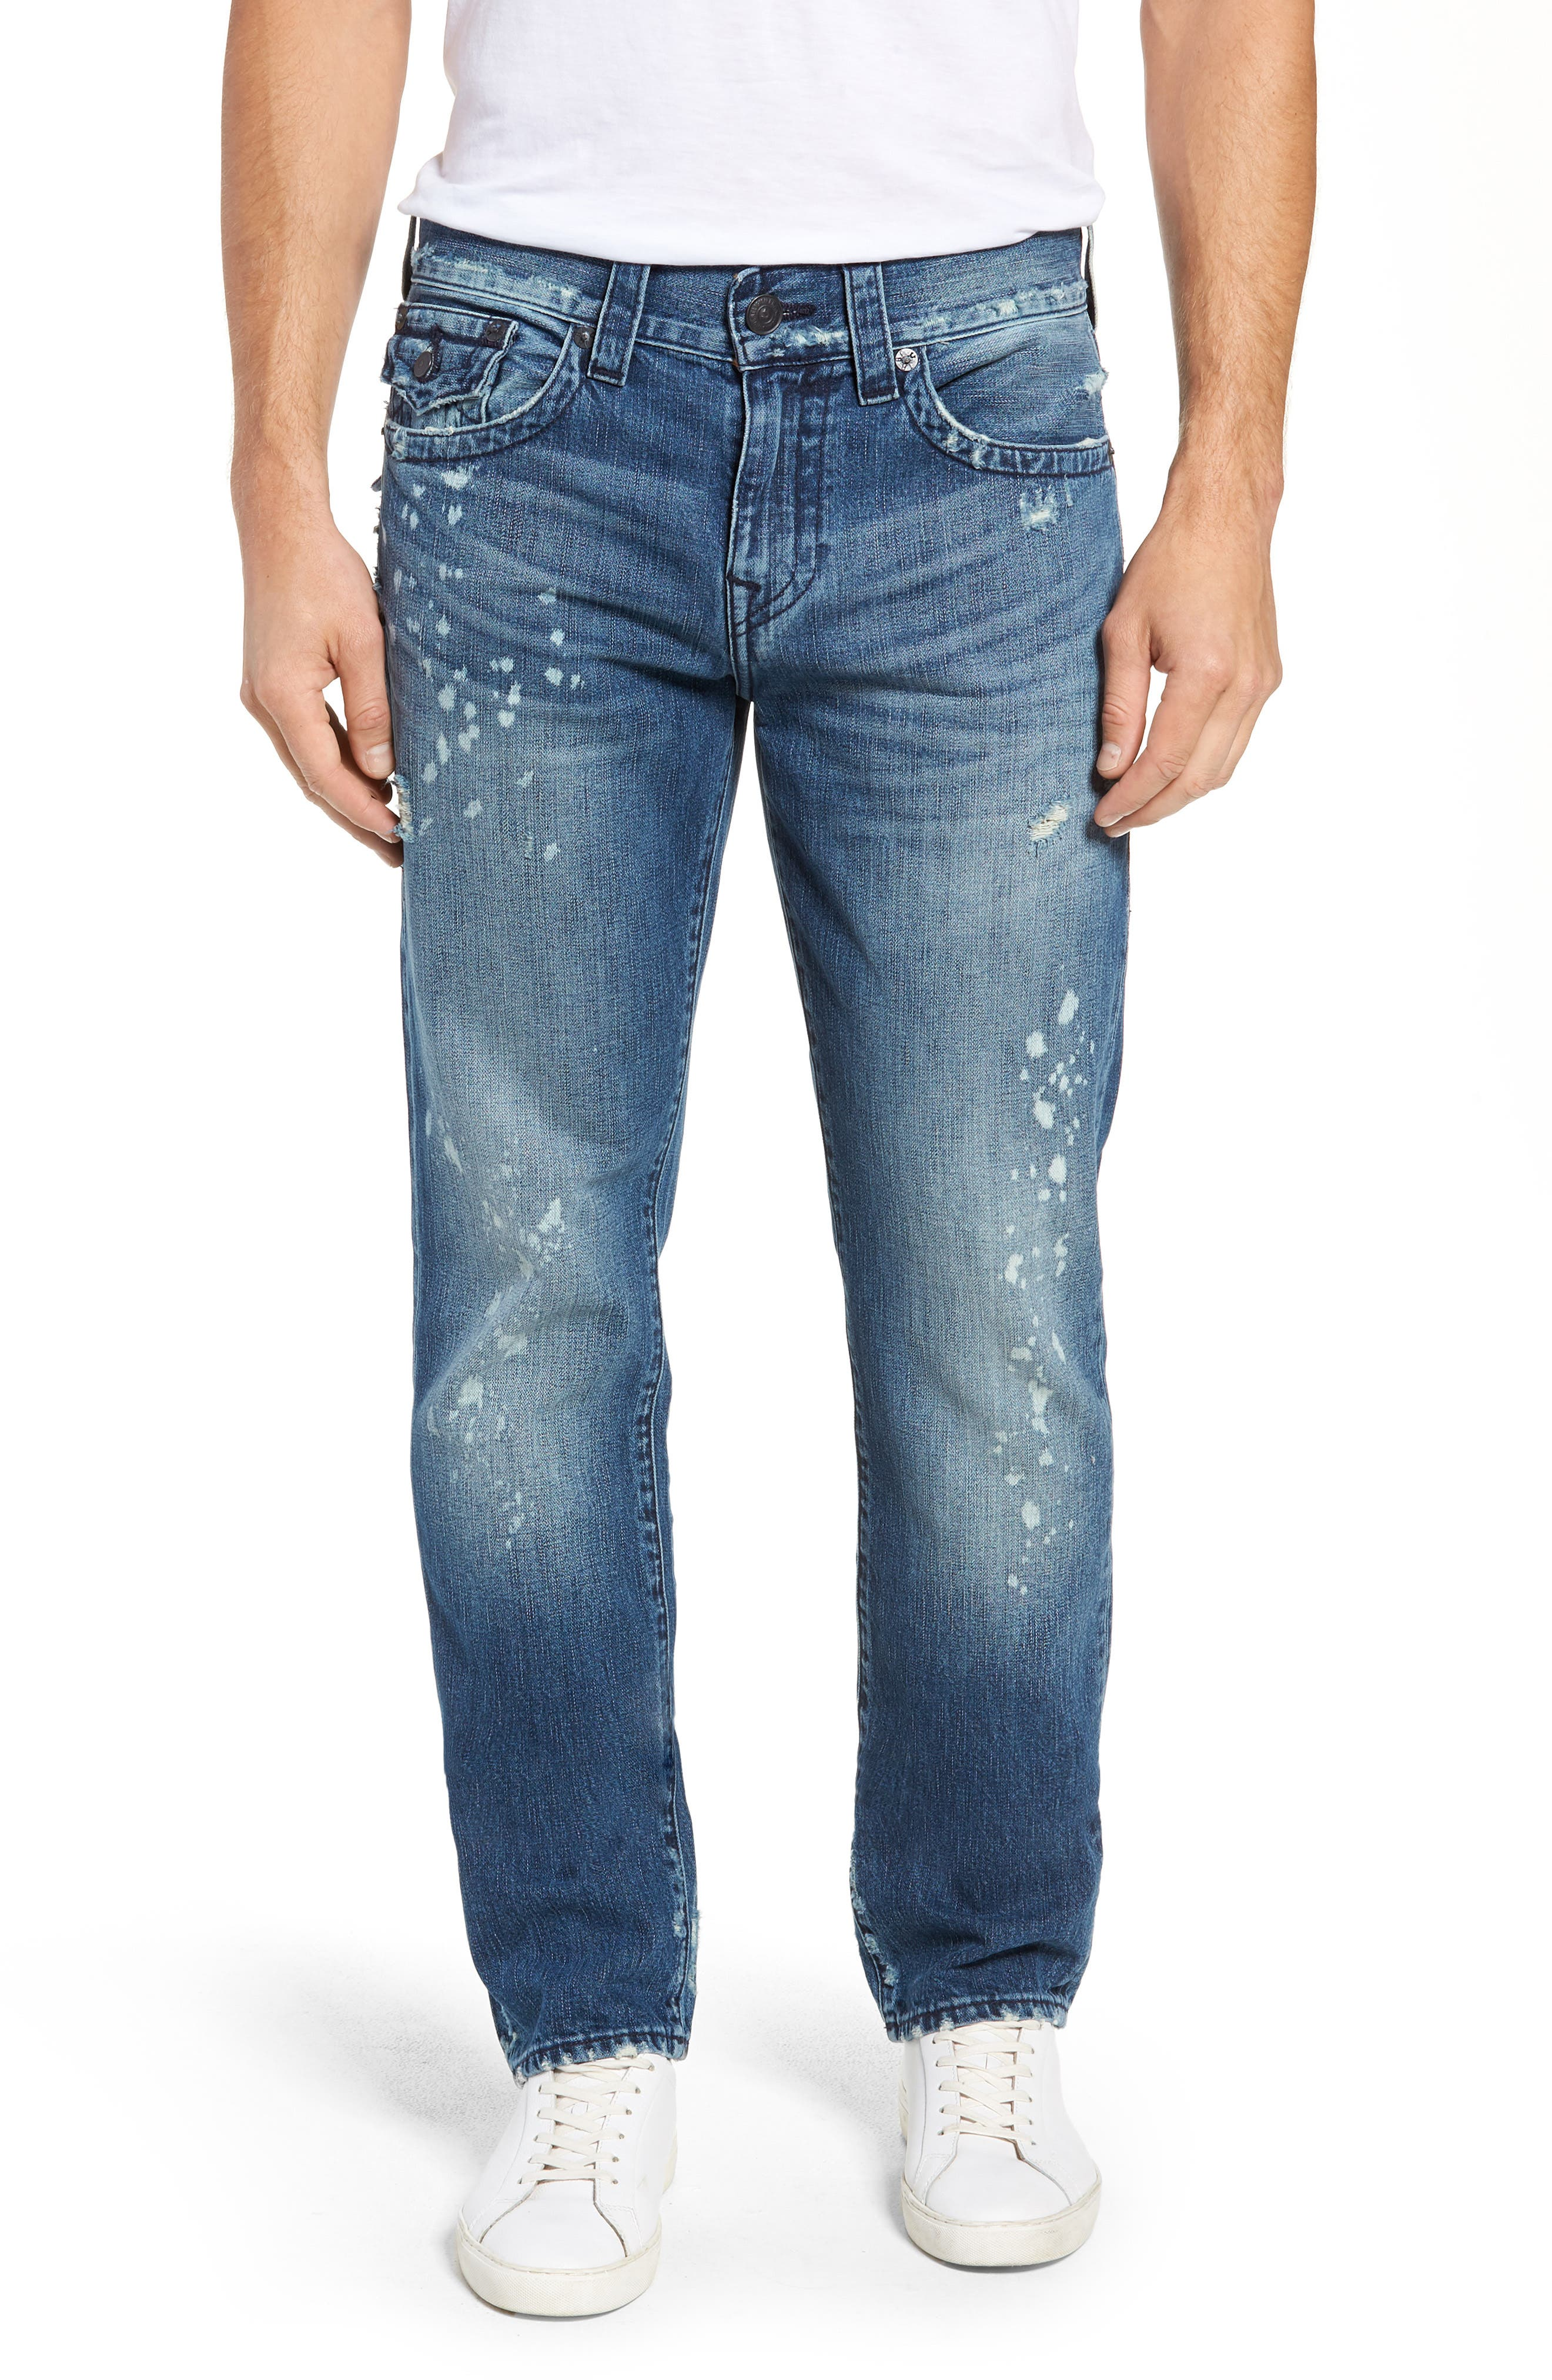 Geno Straight Fit Jeans,                             Main thumbnail 1, color,                             WORN PASTURE